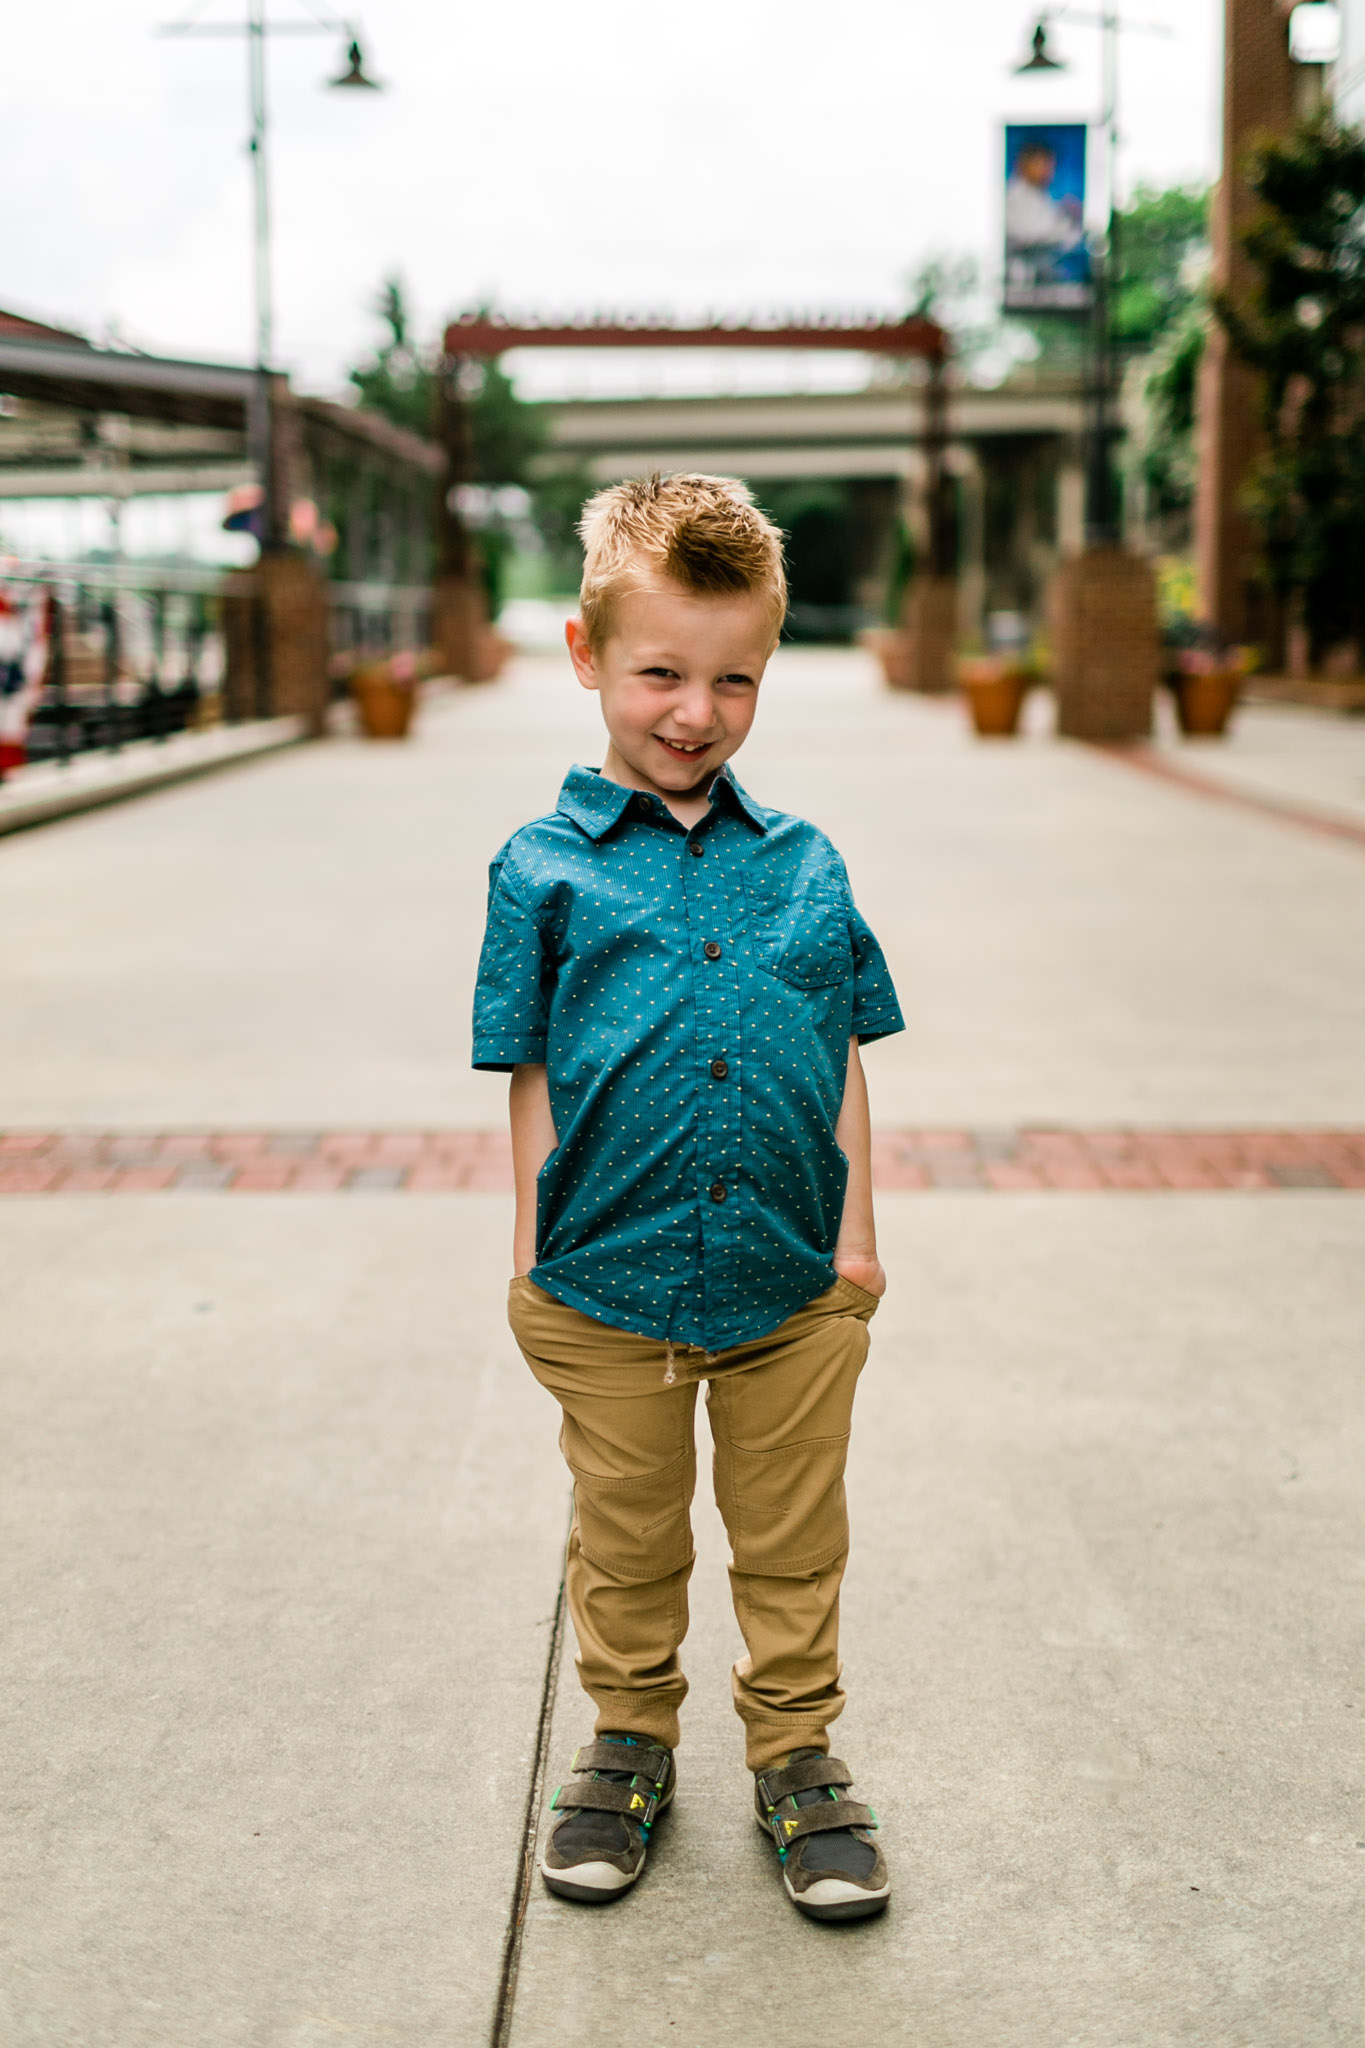 Durham Family Photographer | By G. Lin Photography | Portrait of young boy smiling at camera